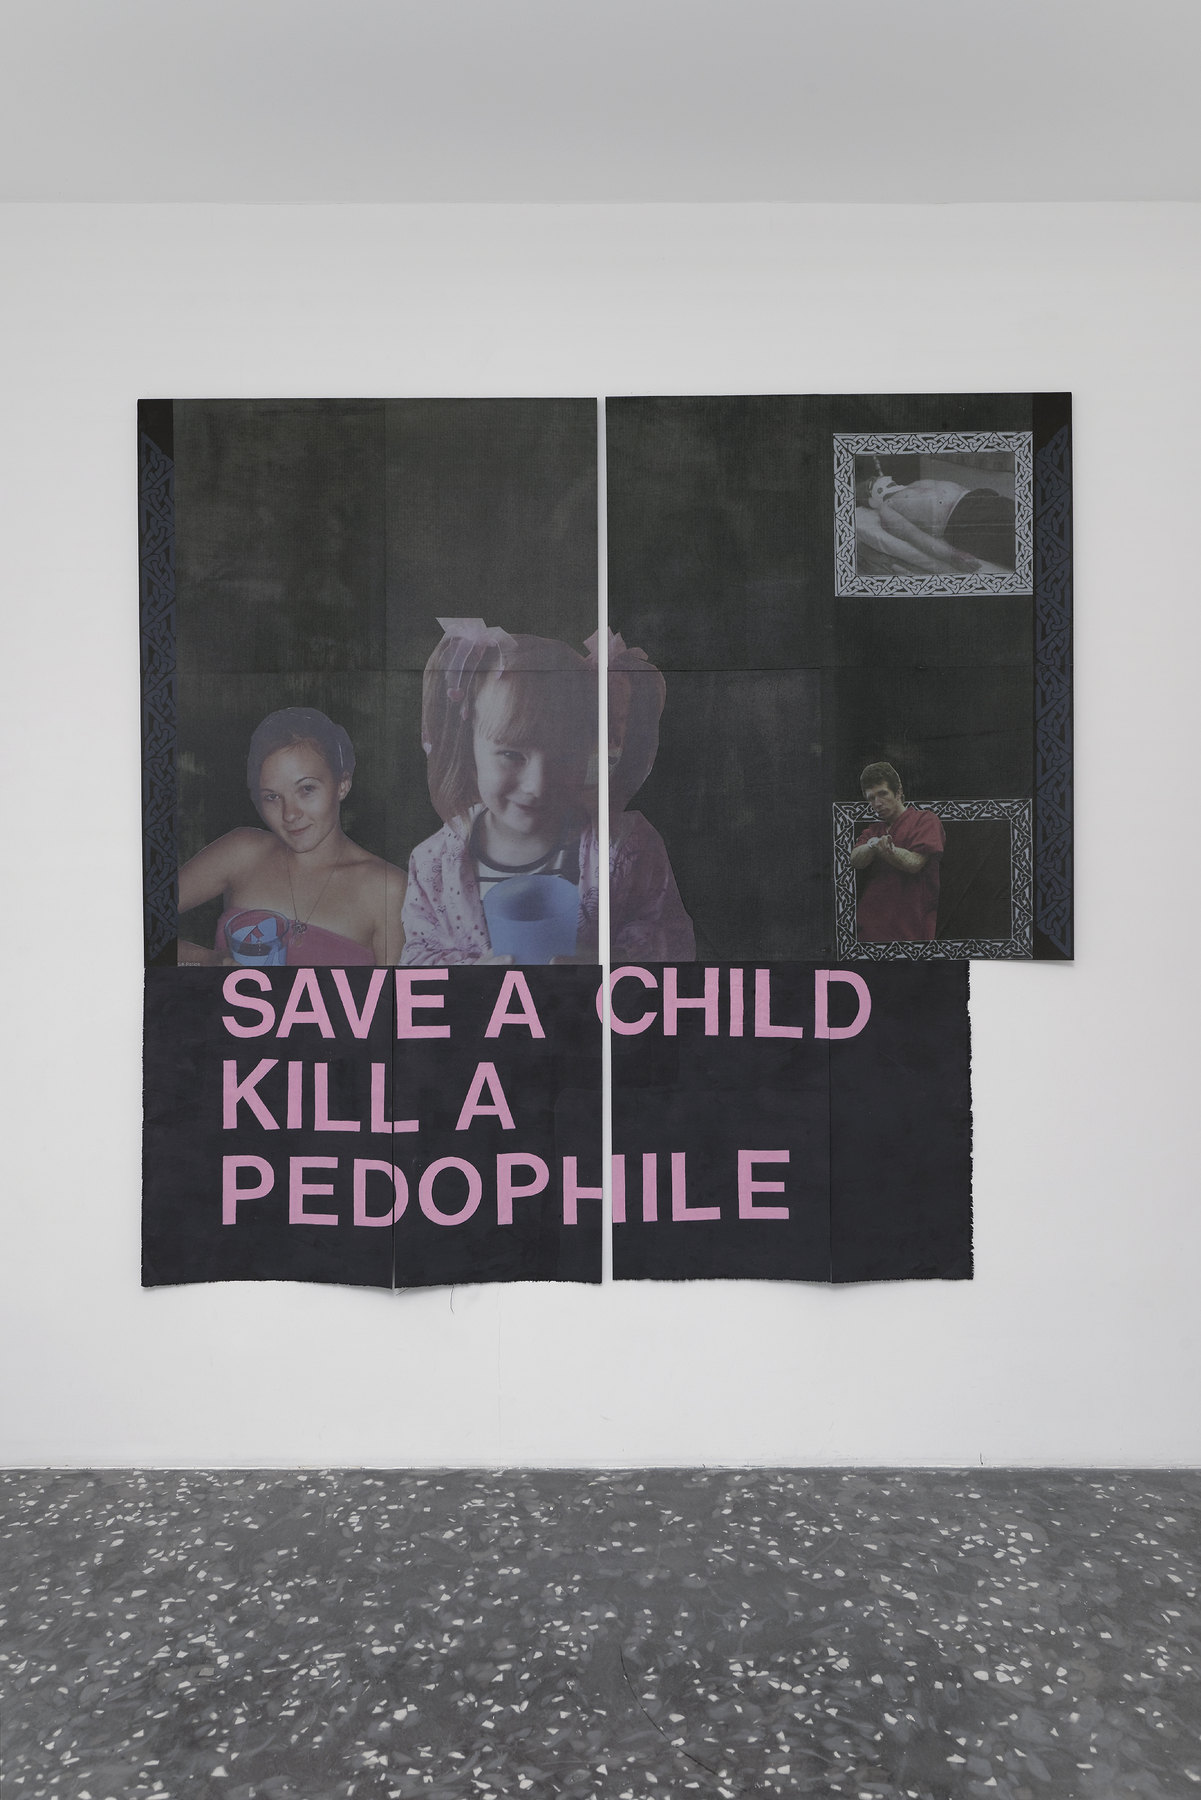 Darja Bajagić, Save A Child, Kill A Pedophile ft. Joseph Druce, Karlie Jade Pearce-Stevenson, Alexa-Marie Quinn, and John Geoghan